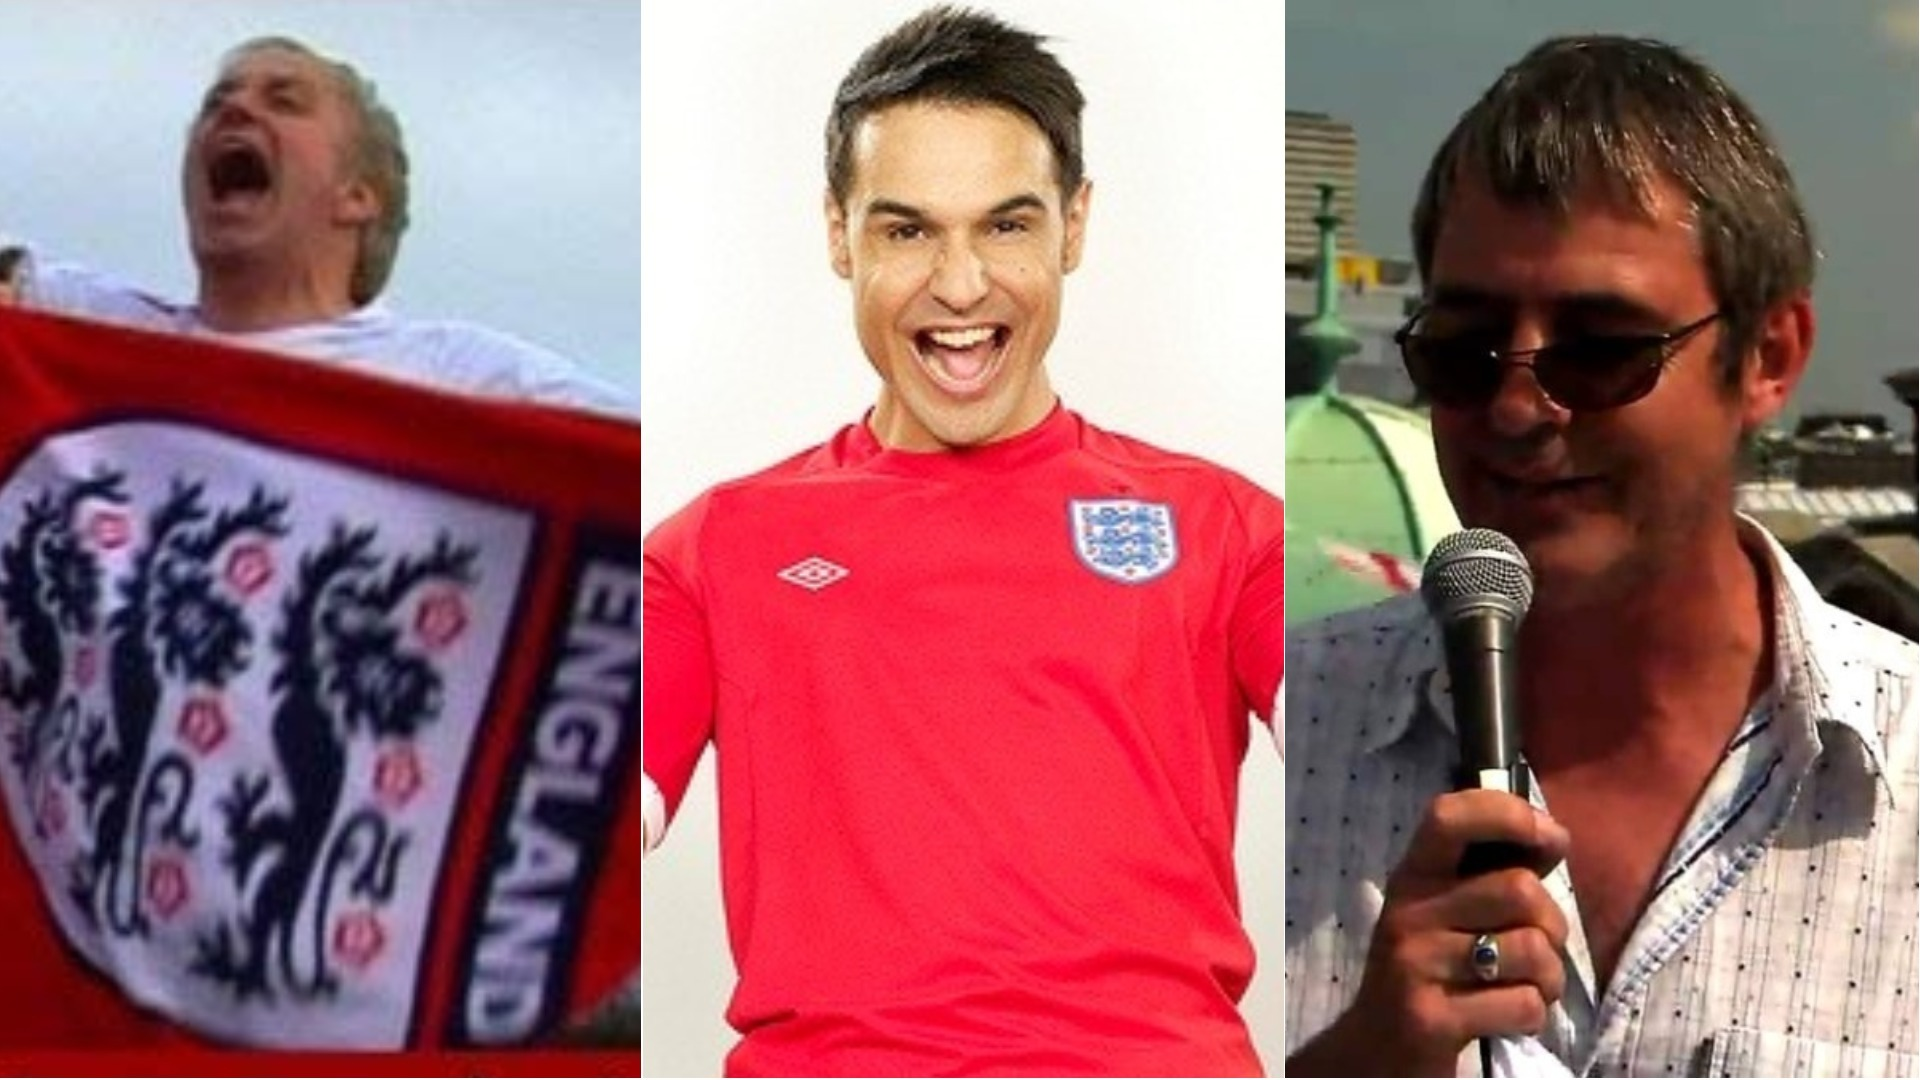 The worst England world cup songs ever.